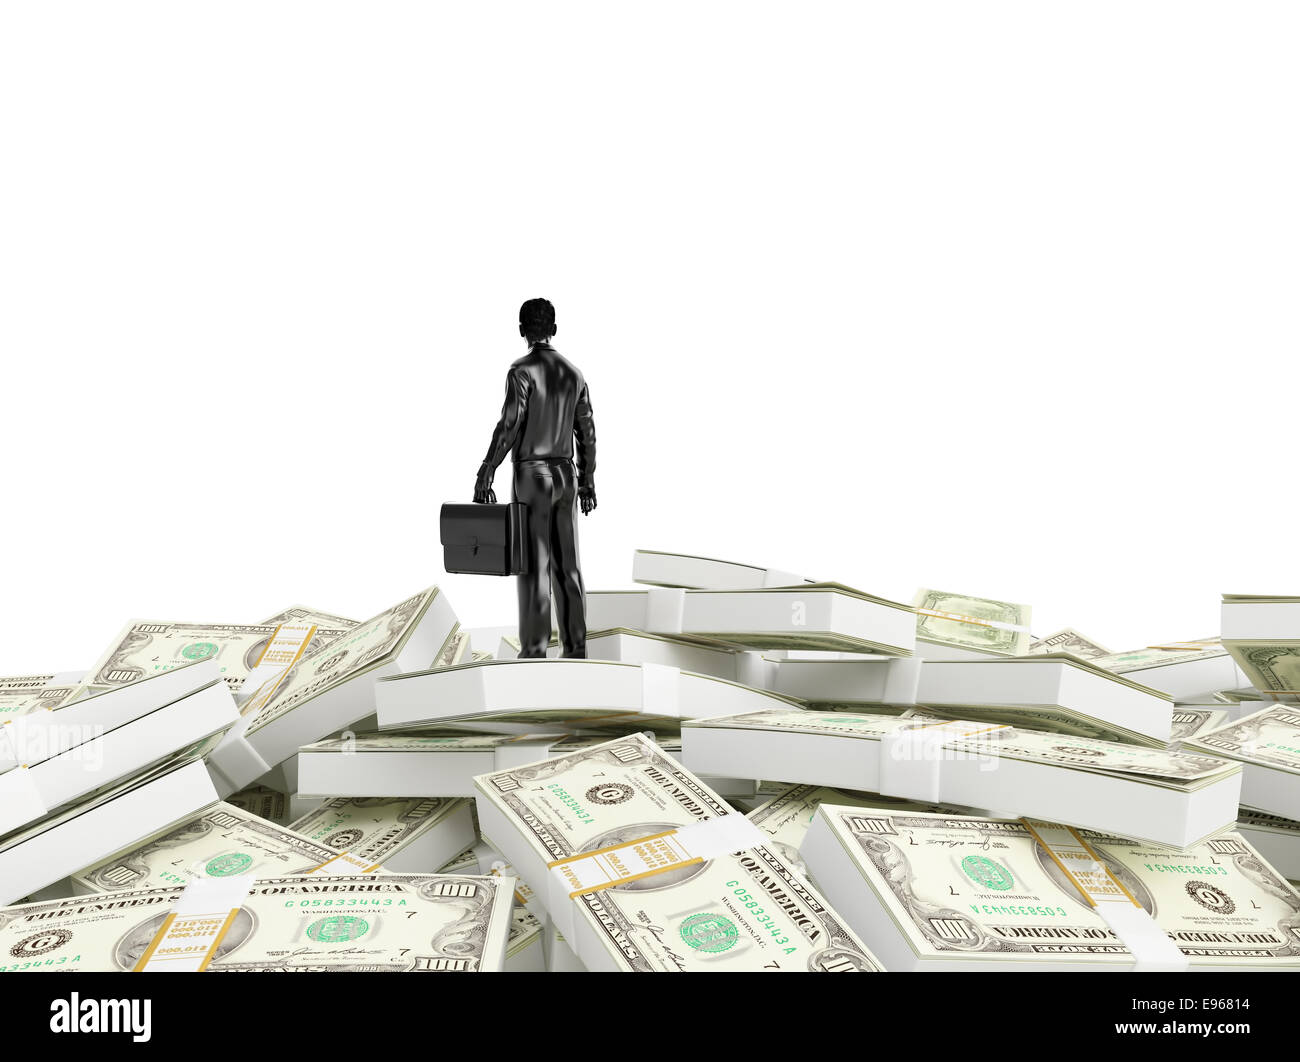 Tiny person standing on a huge pile of money - Stock Image